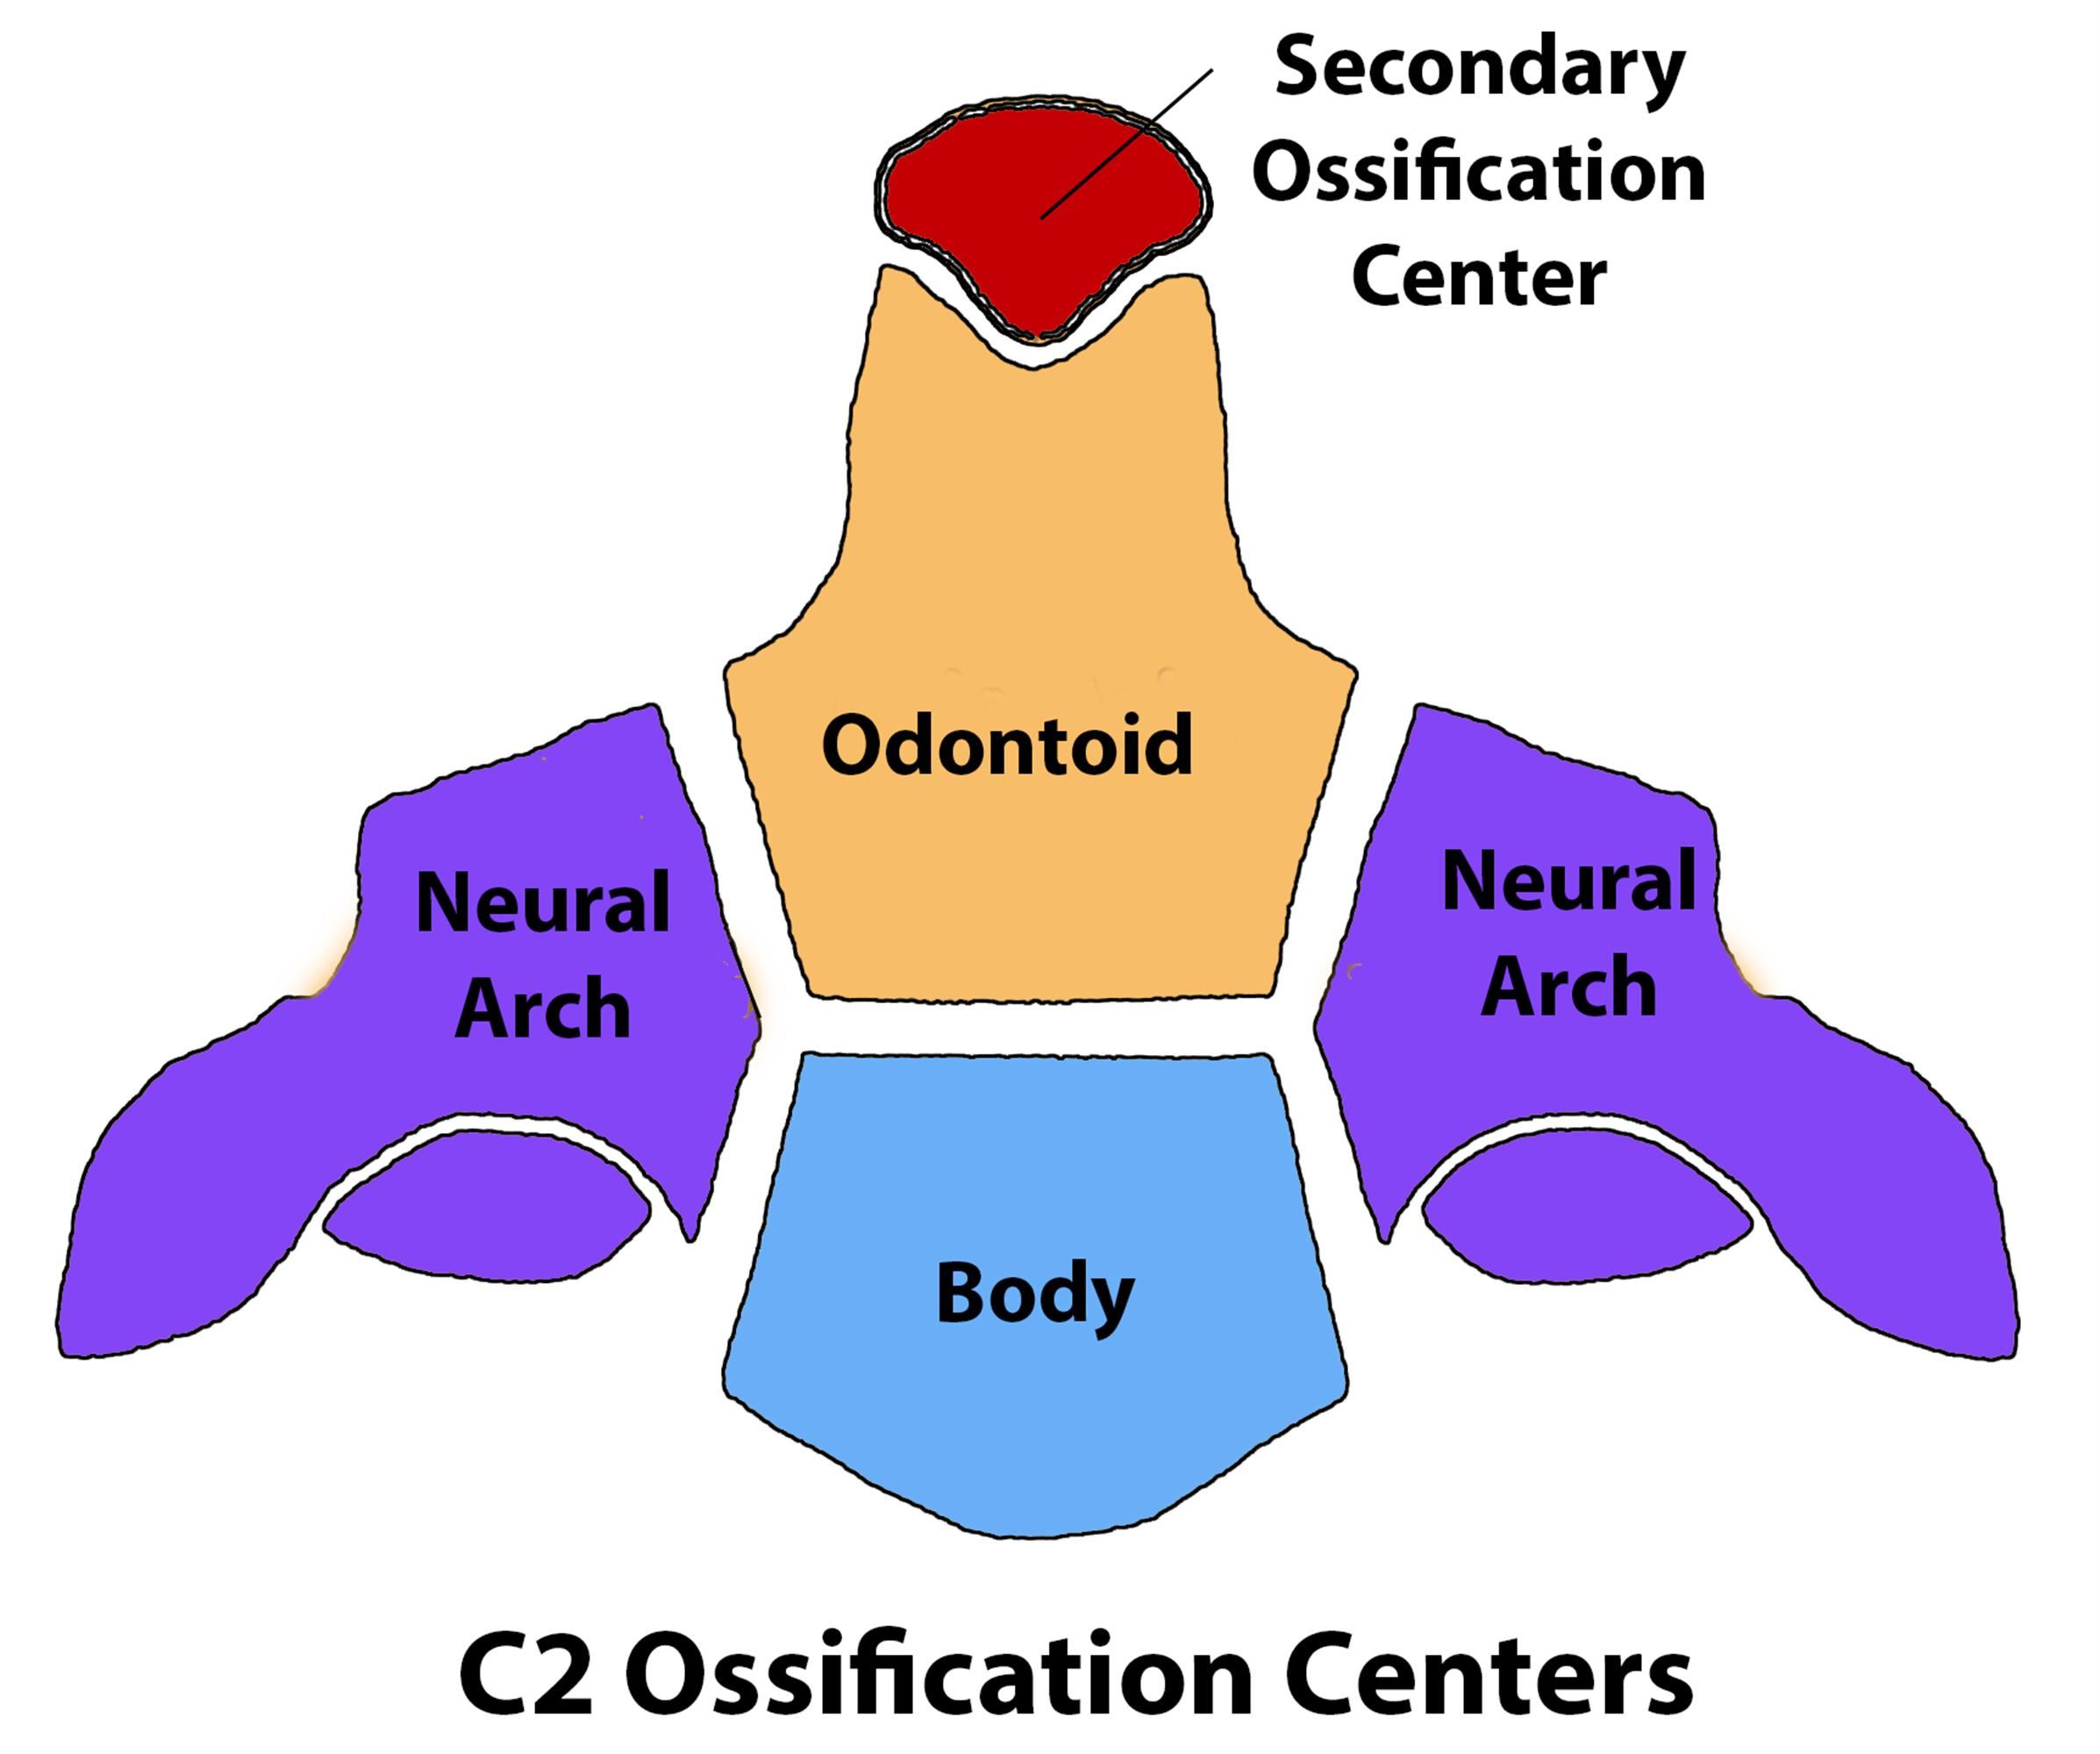 http://upload.orthobullets.com/topic/2016/images/ossification center c2.jpg